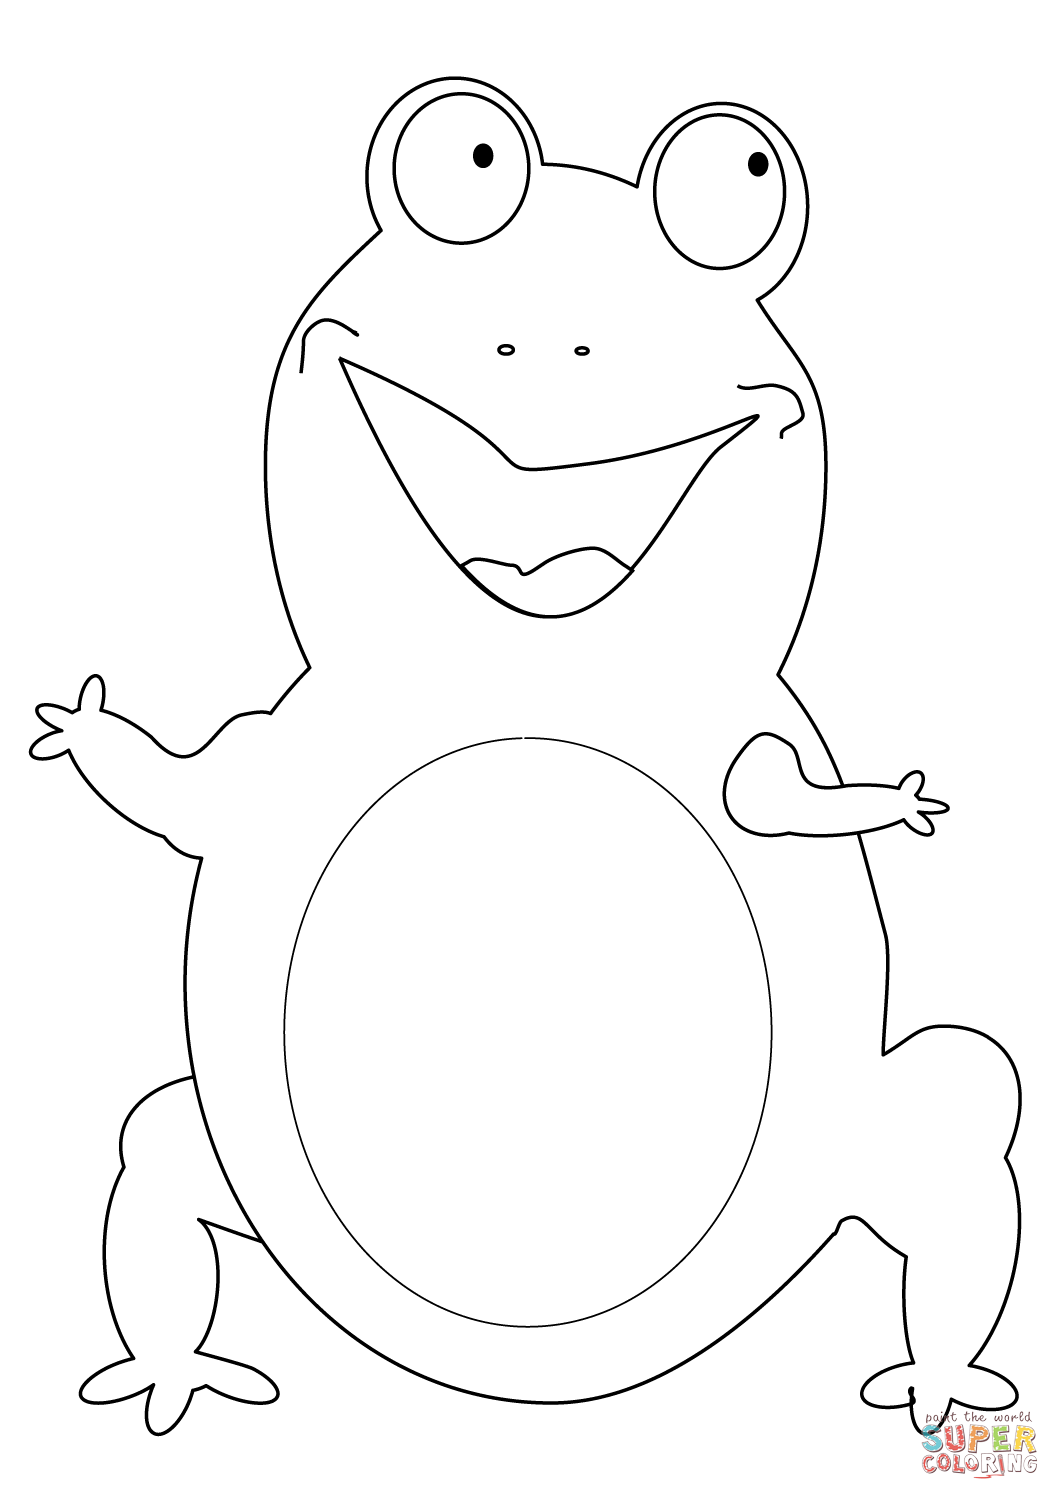 Frog And Toad Together Coloring Pages Public Domain